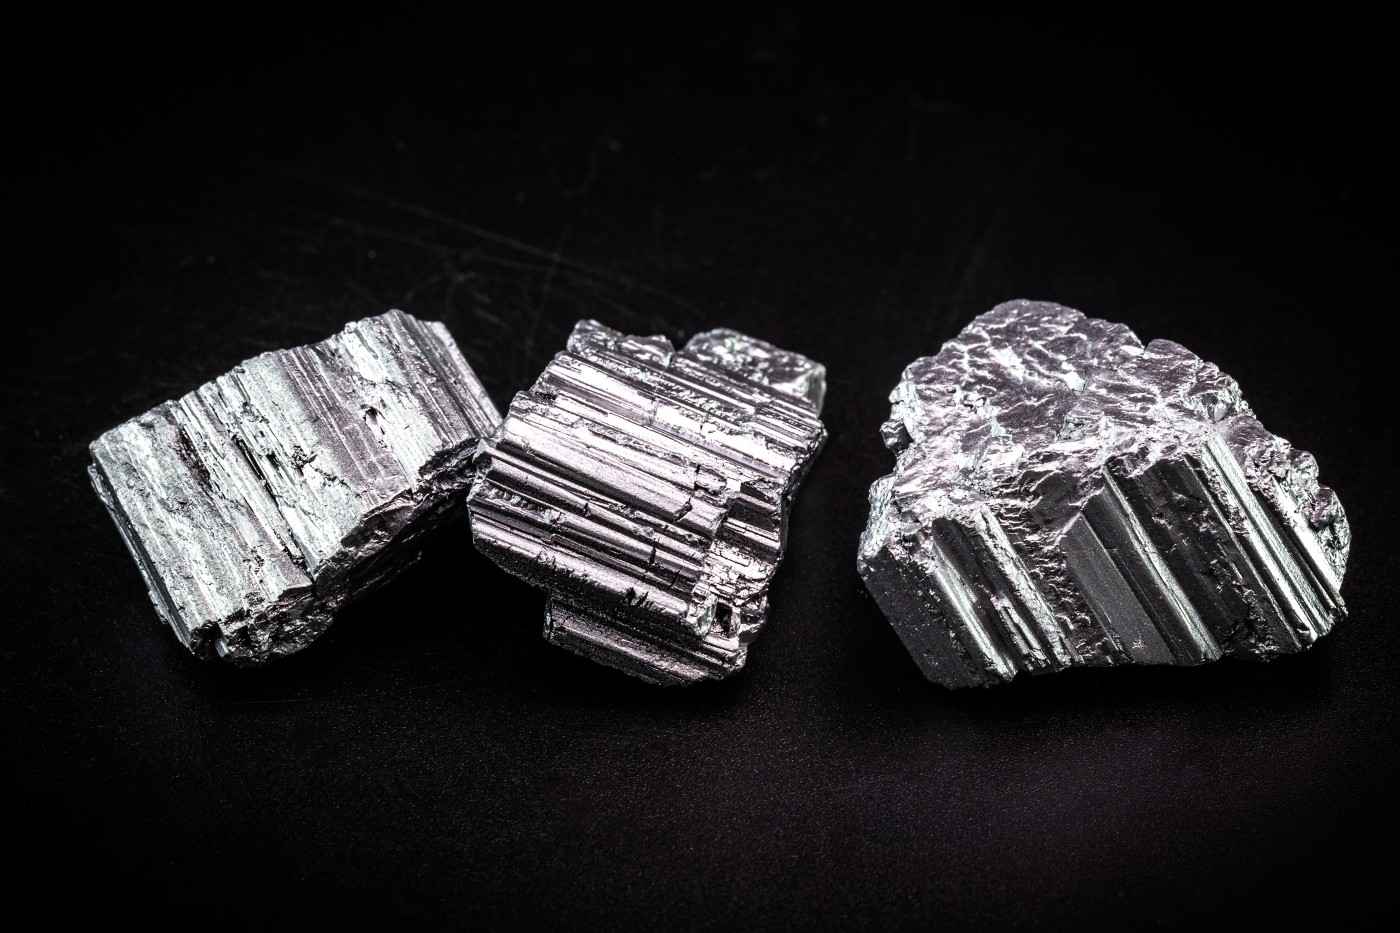 https://tickertapecdn.tdameritrade.com/assets/images/pages/md/Neodymium pieces: Rare earth metals